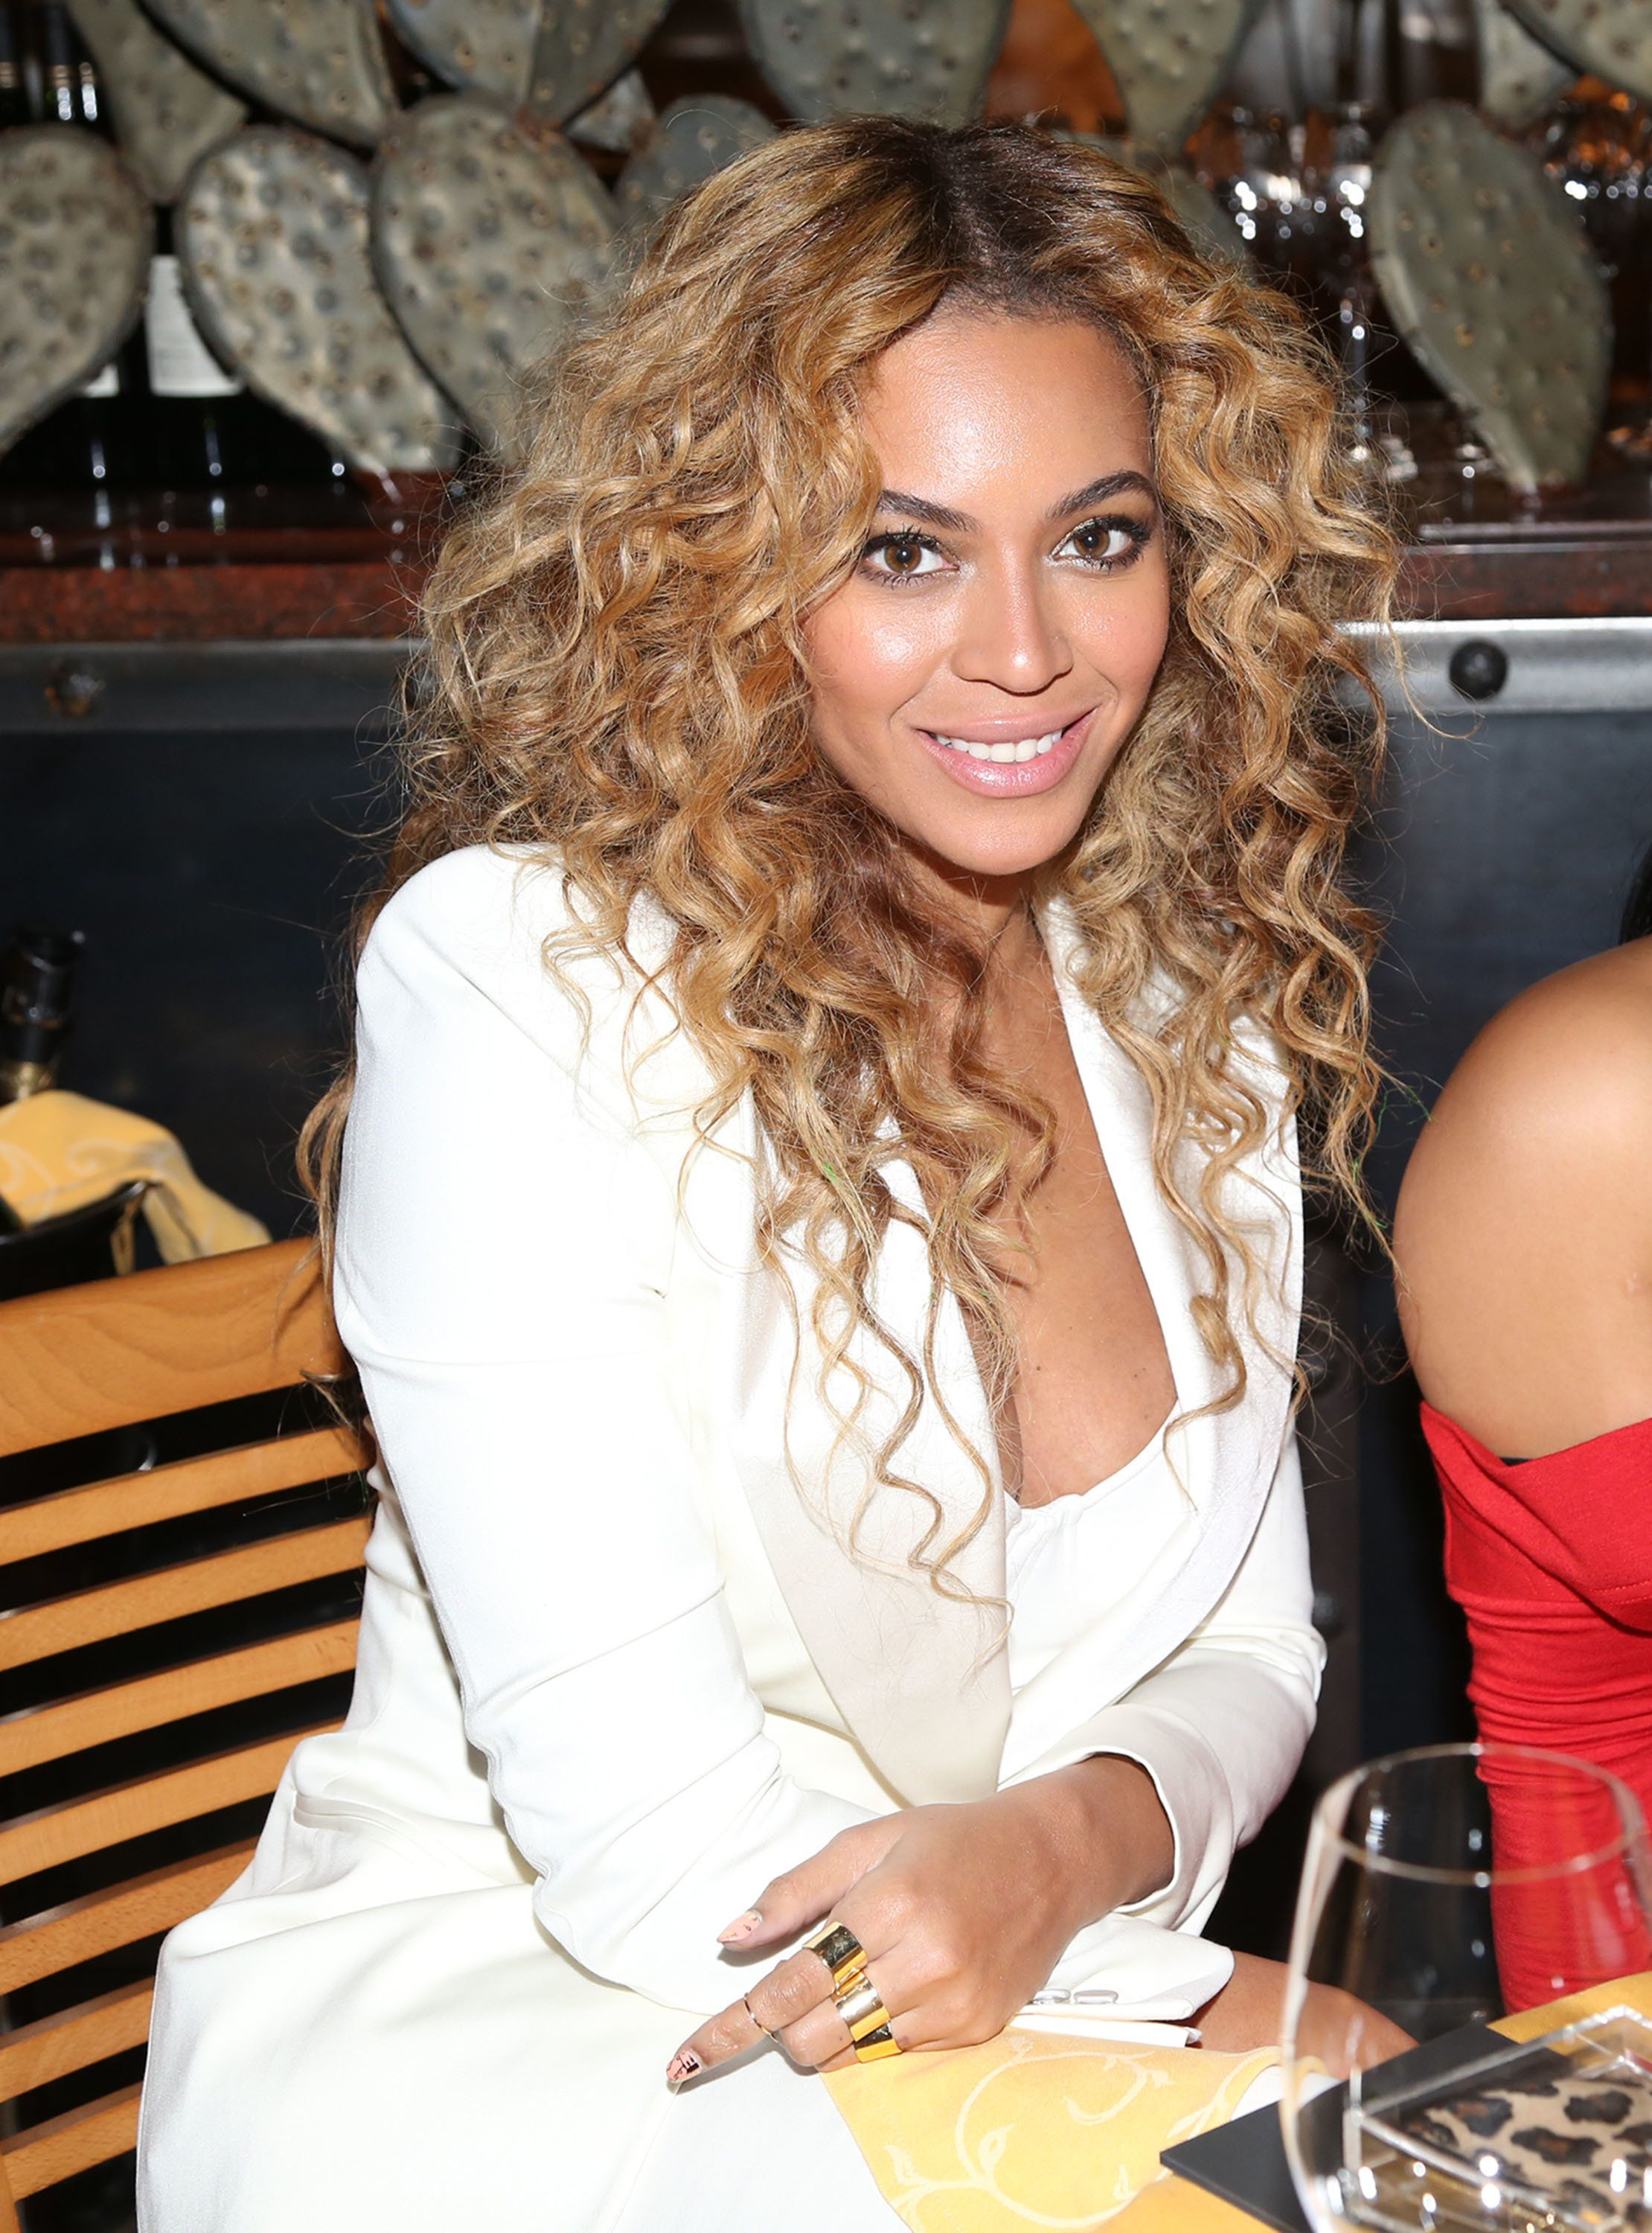 HOUSTON, TX - FEBRUARY 16:  Beyonce attends The Two Kings Dinner presented by Sprite at RDG + Bar Annie on February 16, 2013 in Houston, Texas.  (Photo by Johnny Nunez/WireImage)